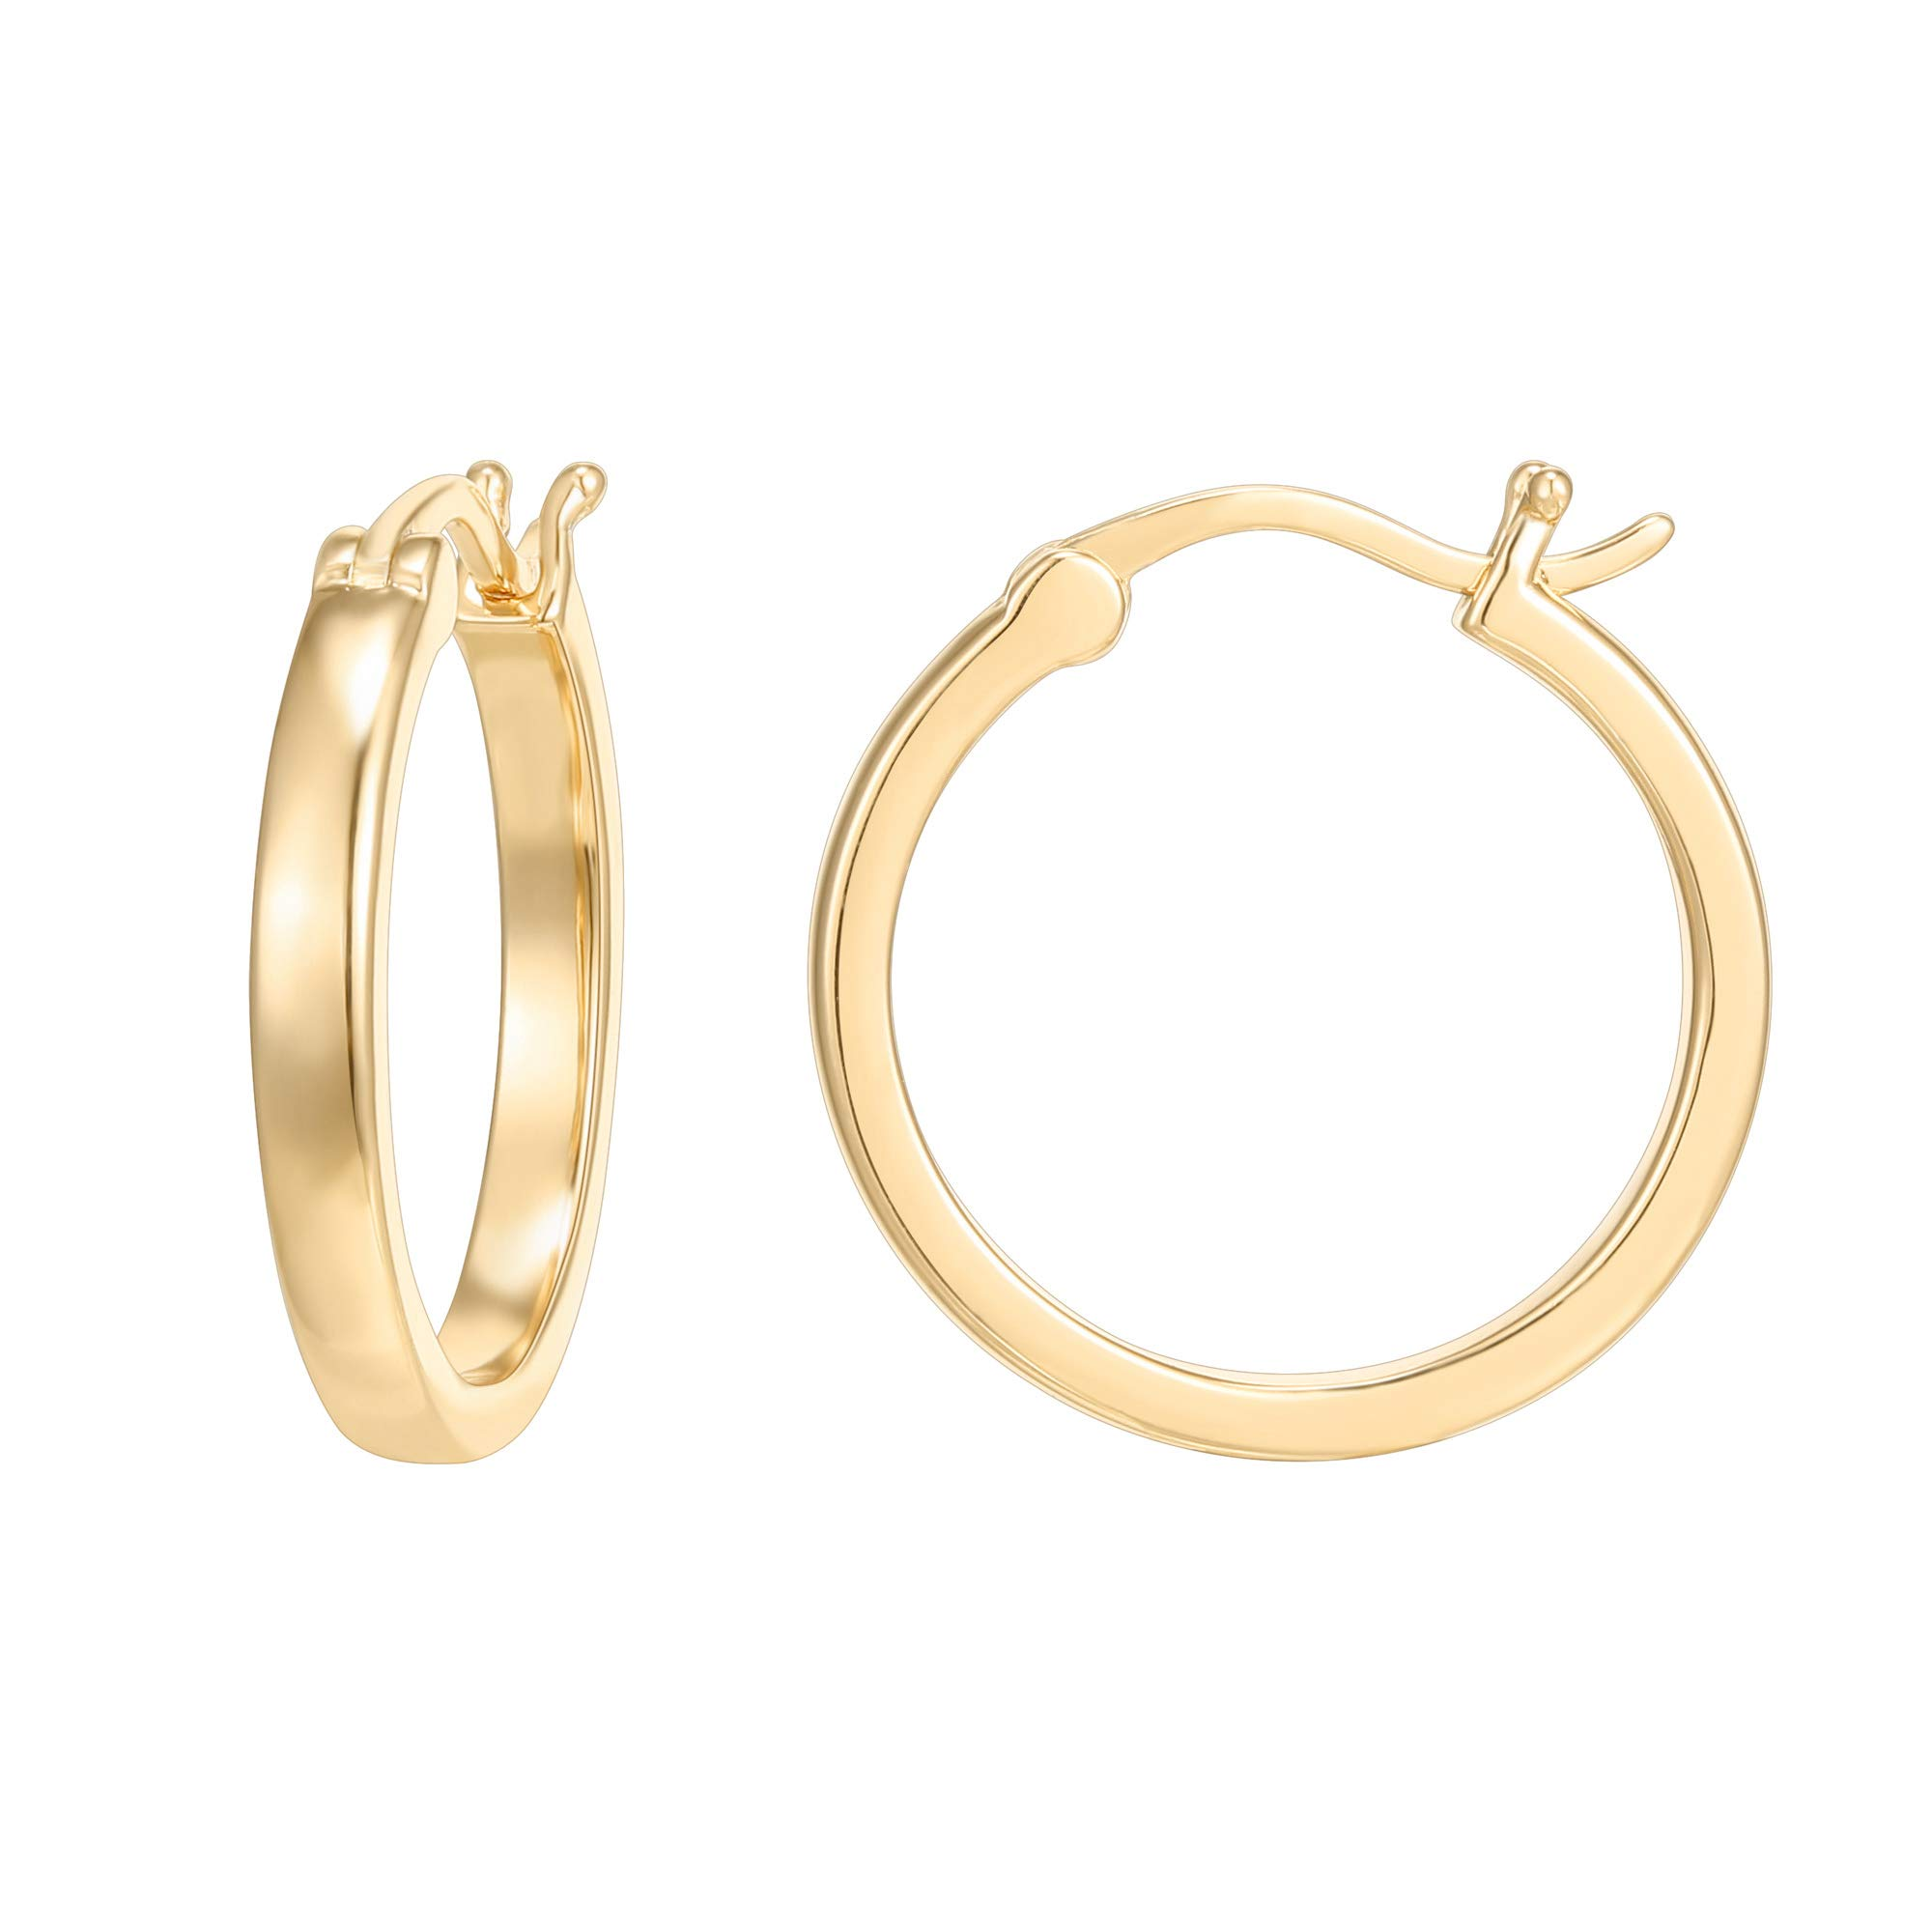 PAVOI 14K Yellow Gold Plated 925 Sterling Silver Post Lightweight Hoops | Yellow Gold Hoop Earrings for Women by PAVOI